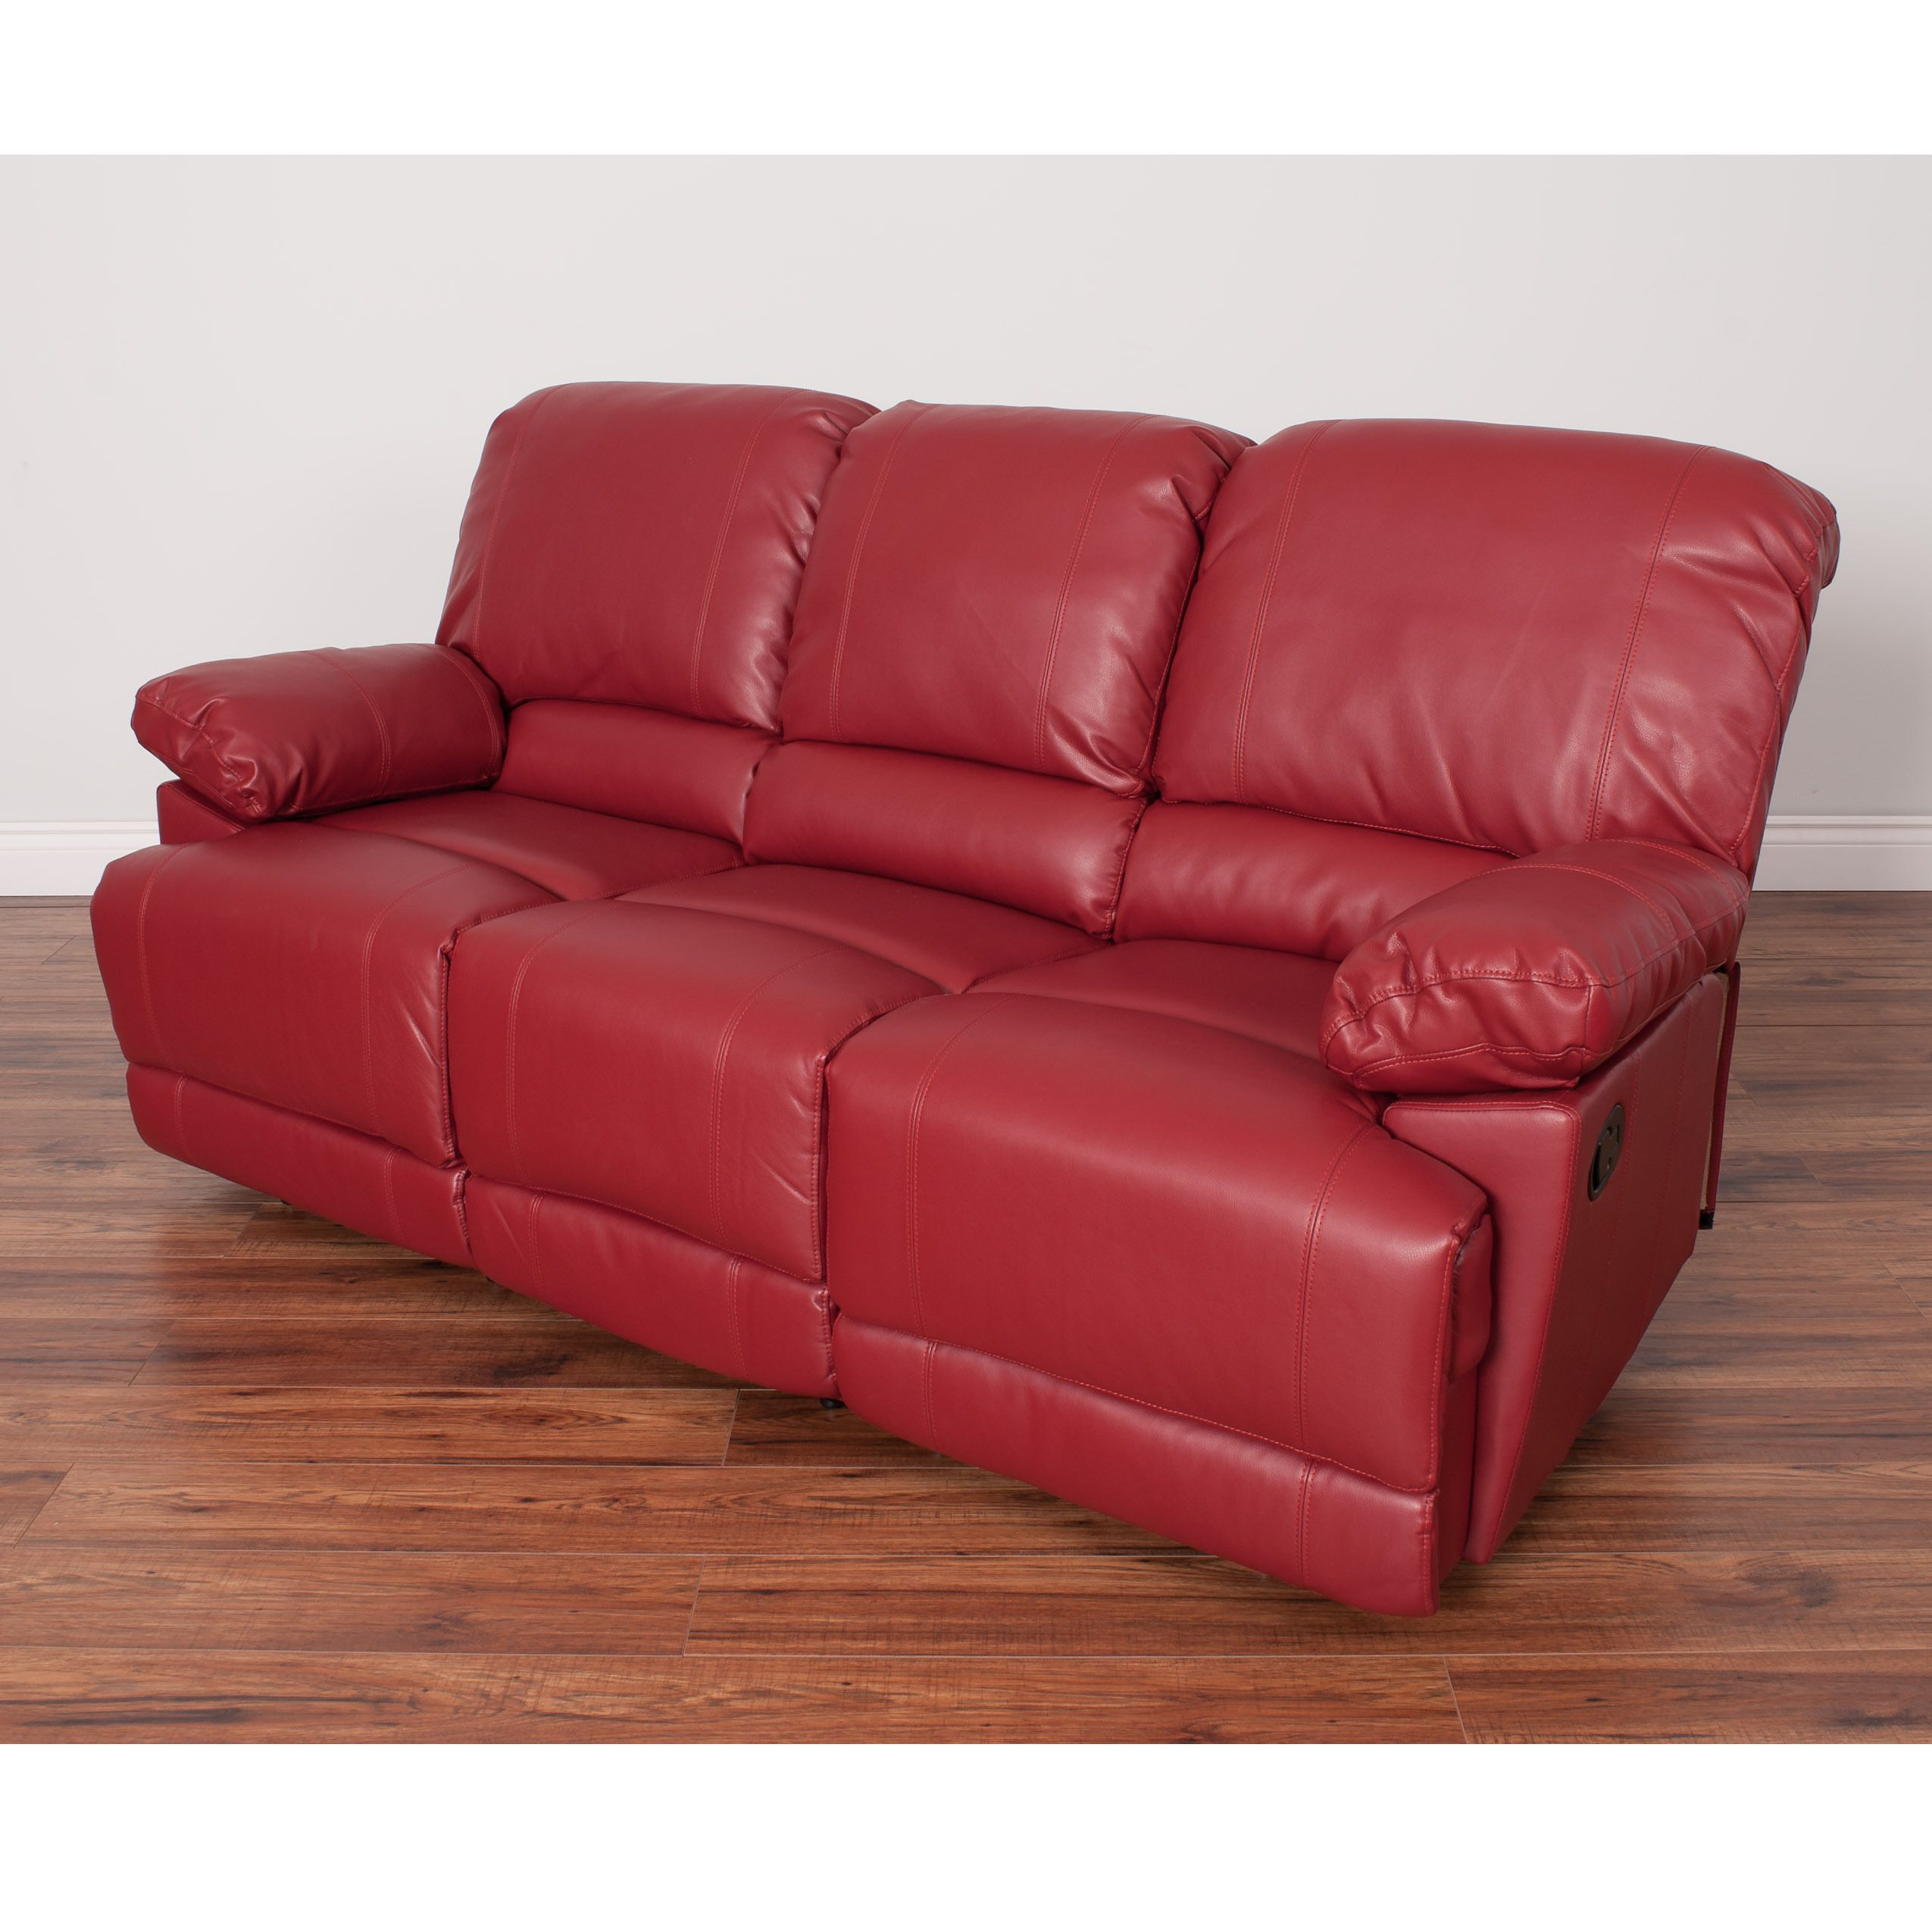 Sofa Tables CorLiving Lea Bonded Leather Reclining Sofa Red